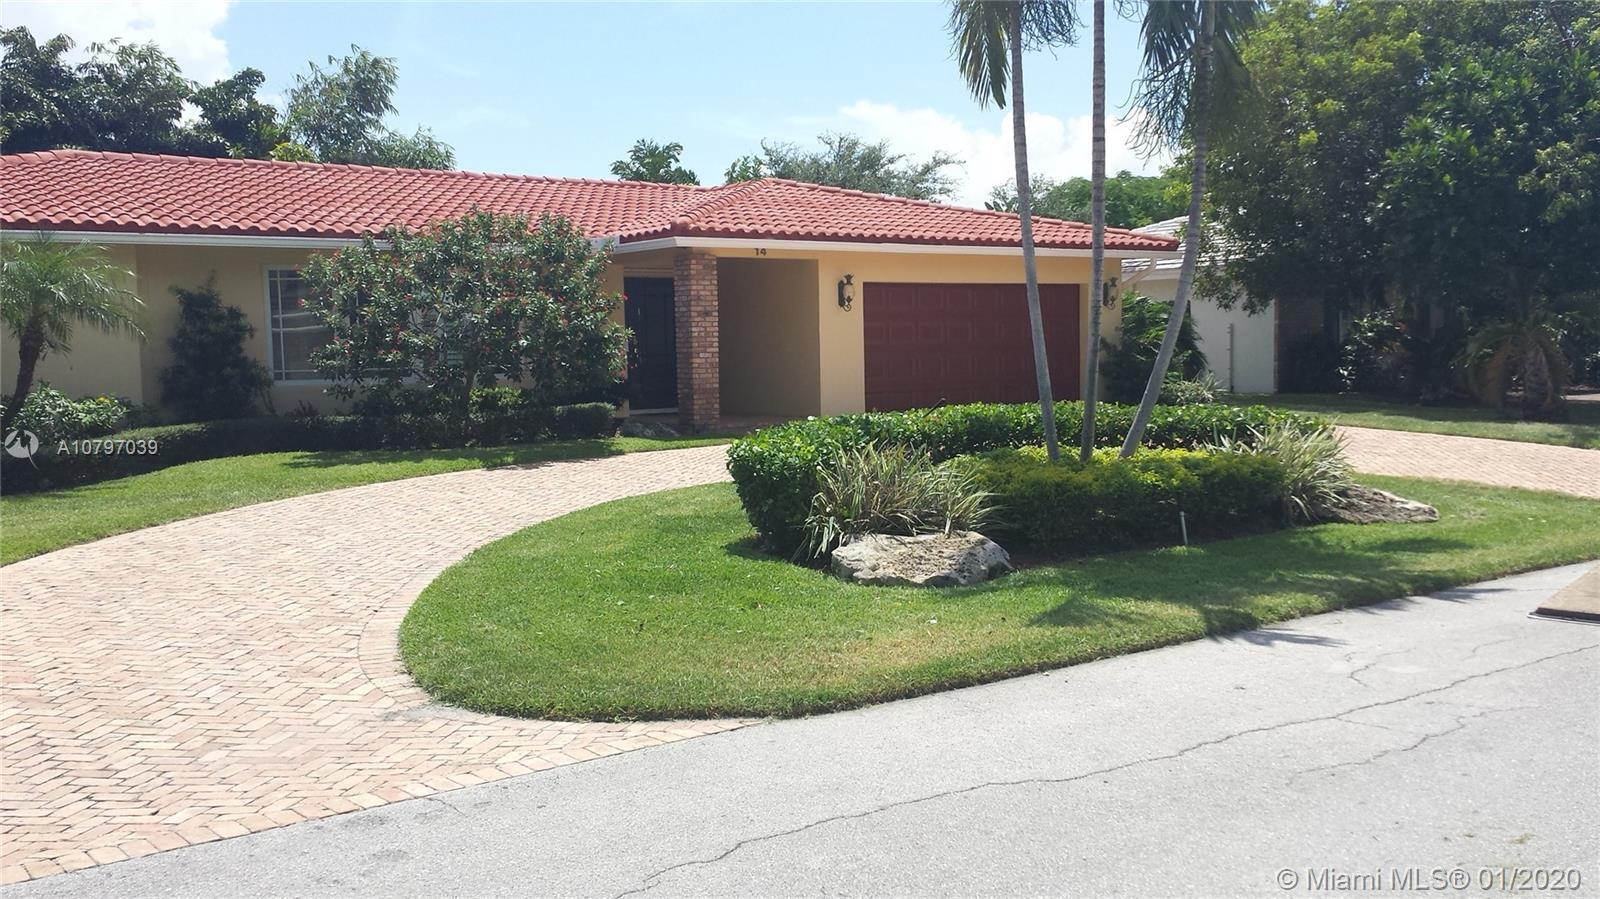 This is a nice 4 bed 3 bath beach house with 2 car garage and pool cabana out back by pool area. Imp